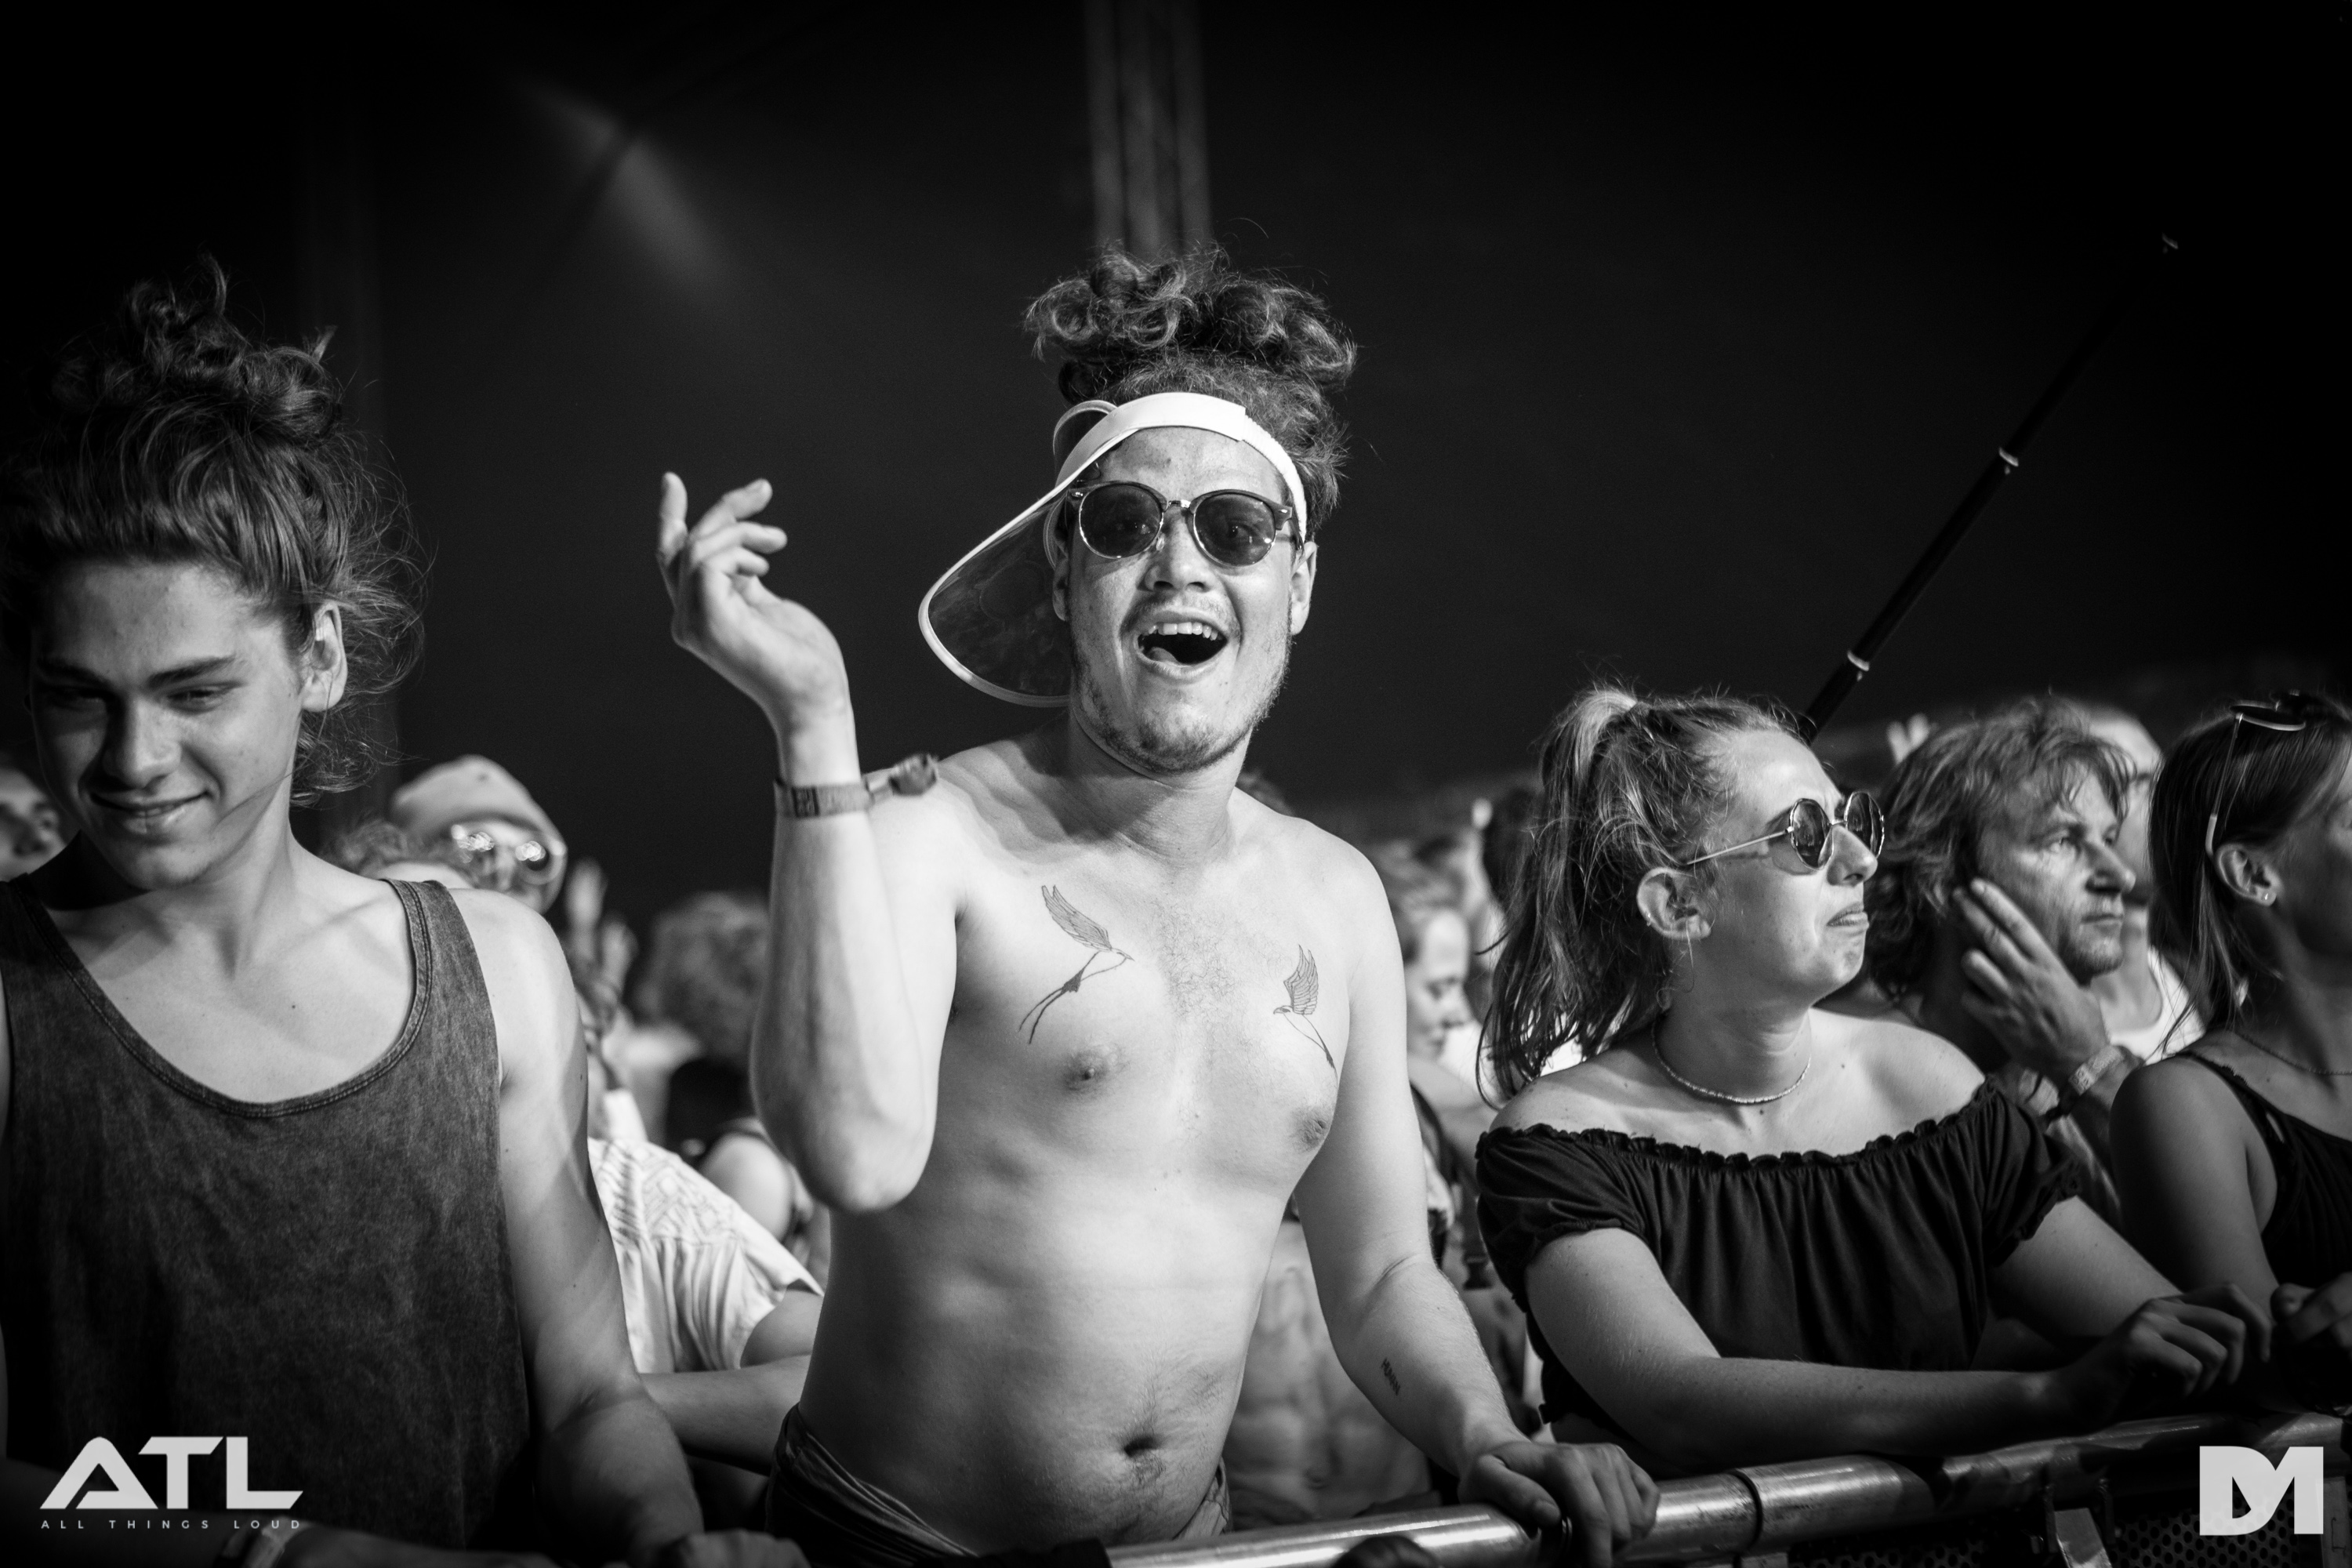 20170715_dour_crowd_atl_26